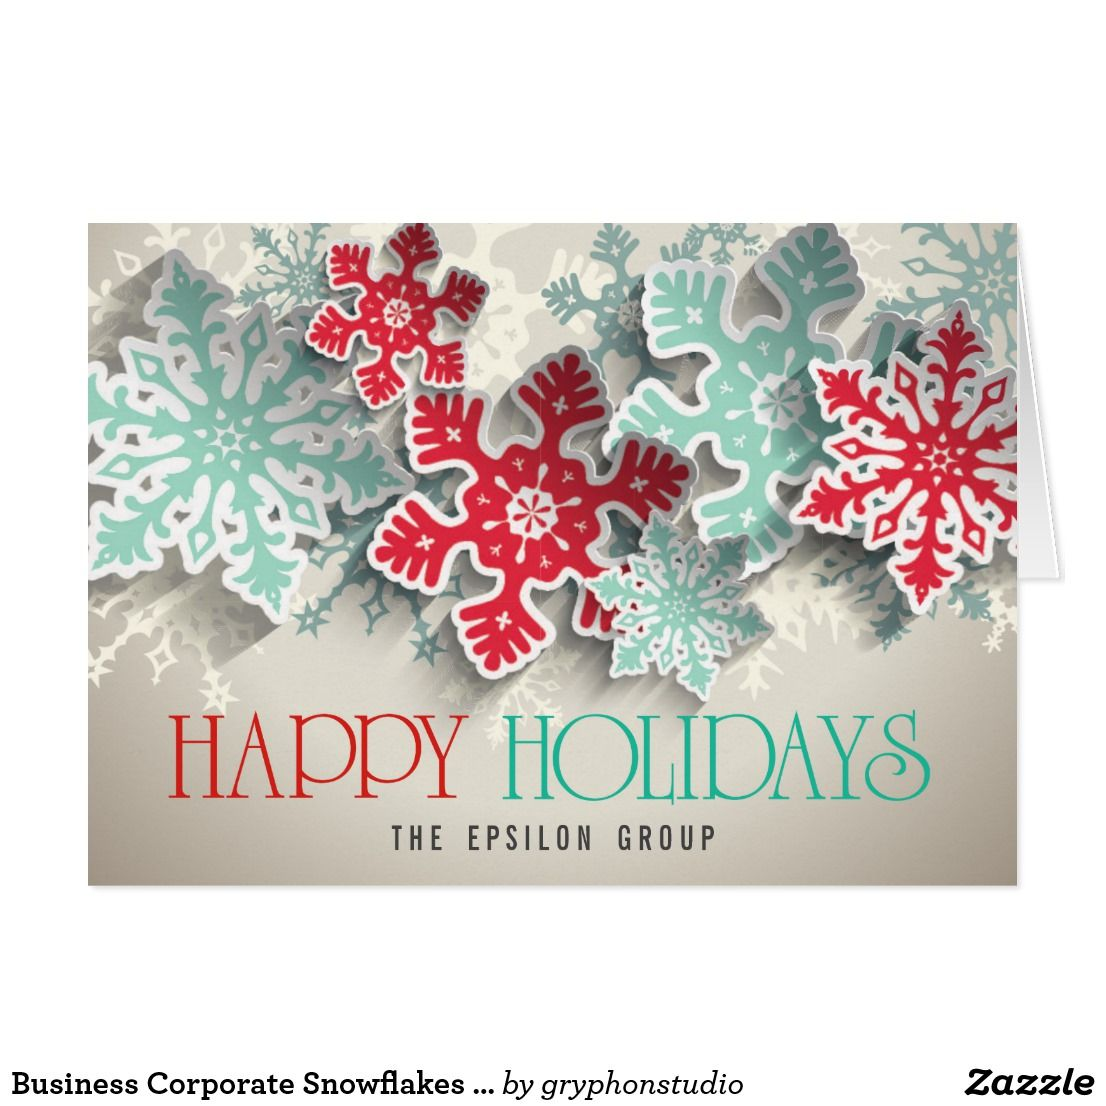 Business Corporate Snowflakes Happy Holidays Card | Christmas ...